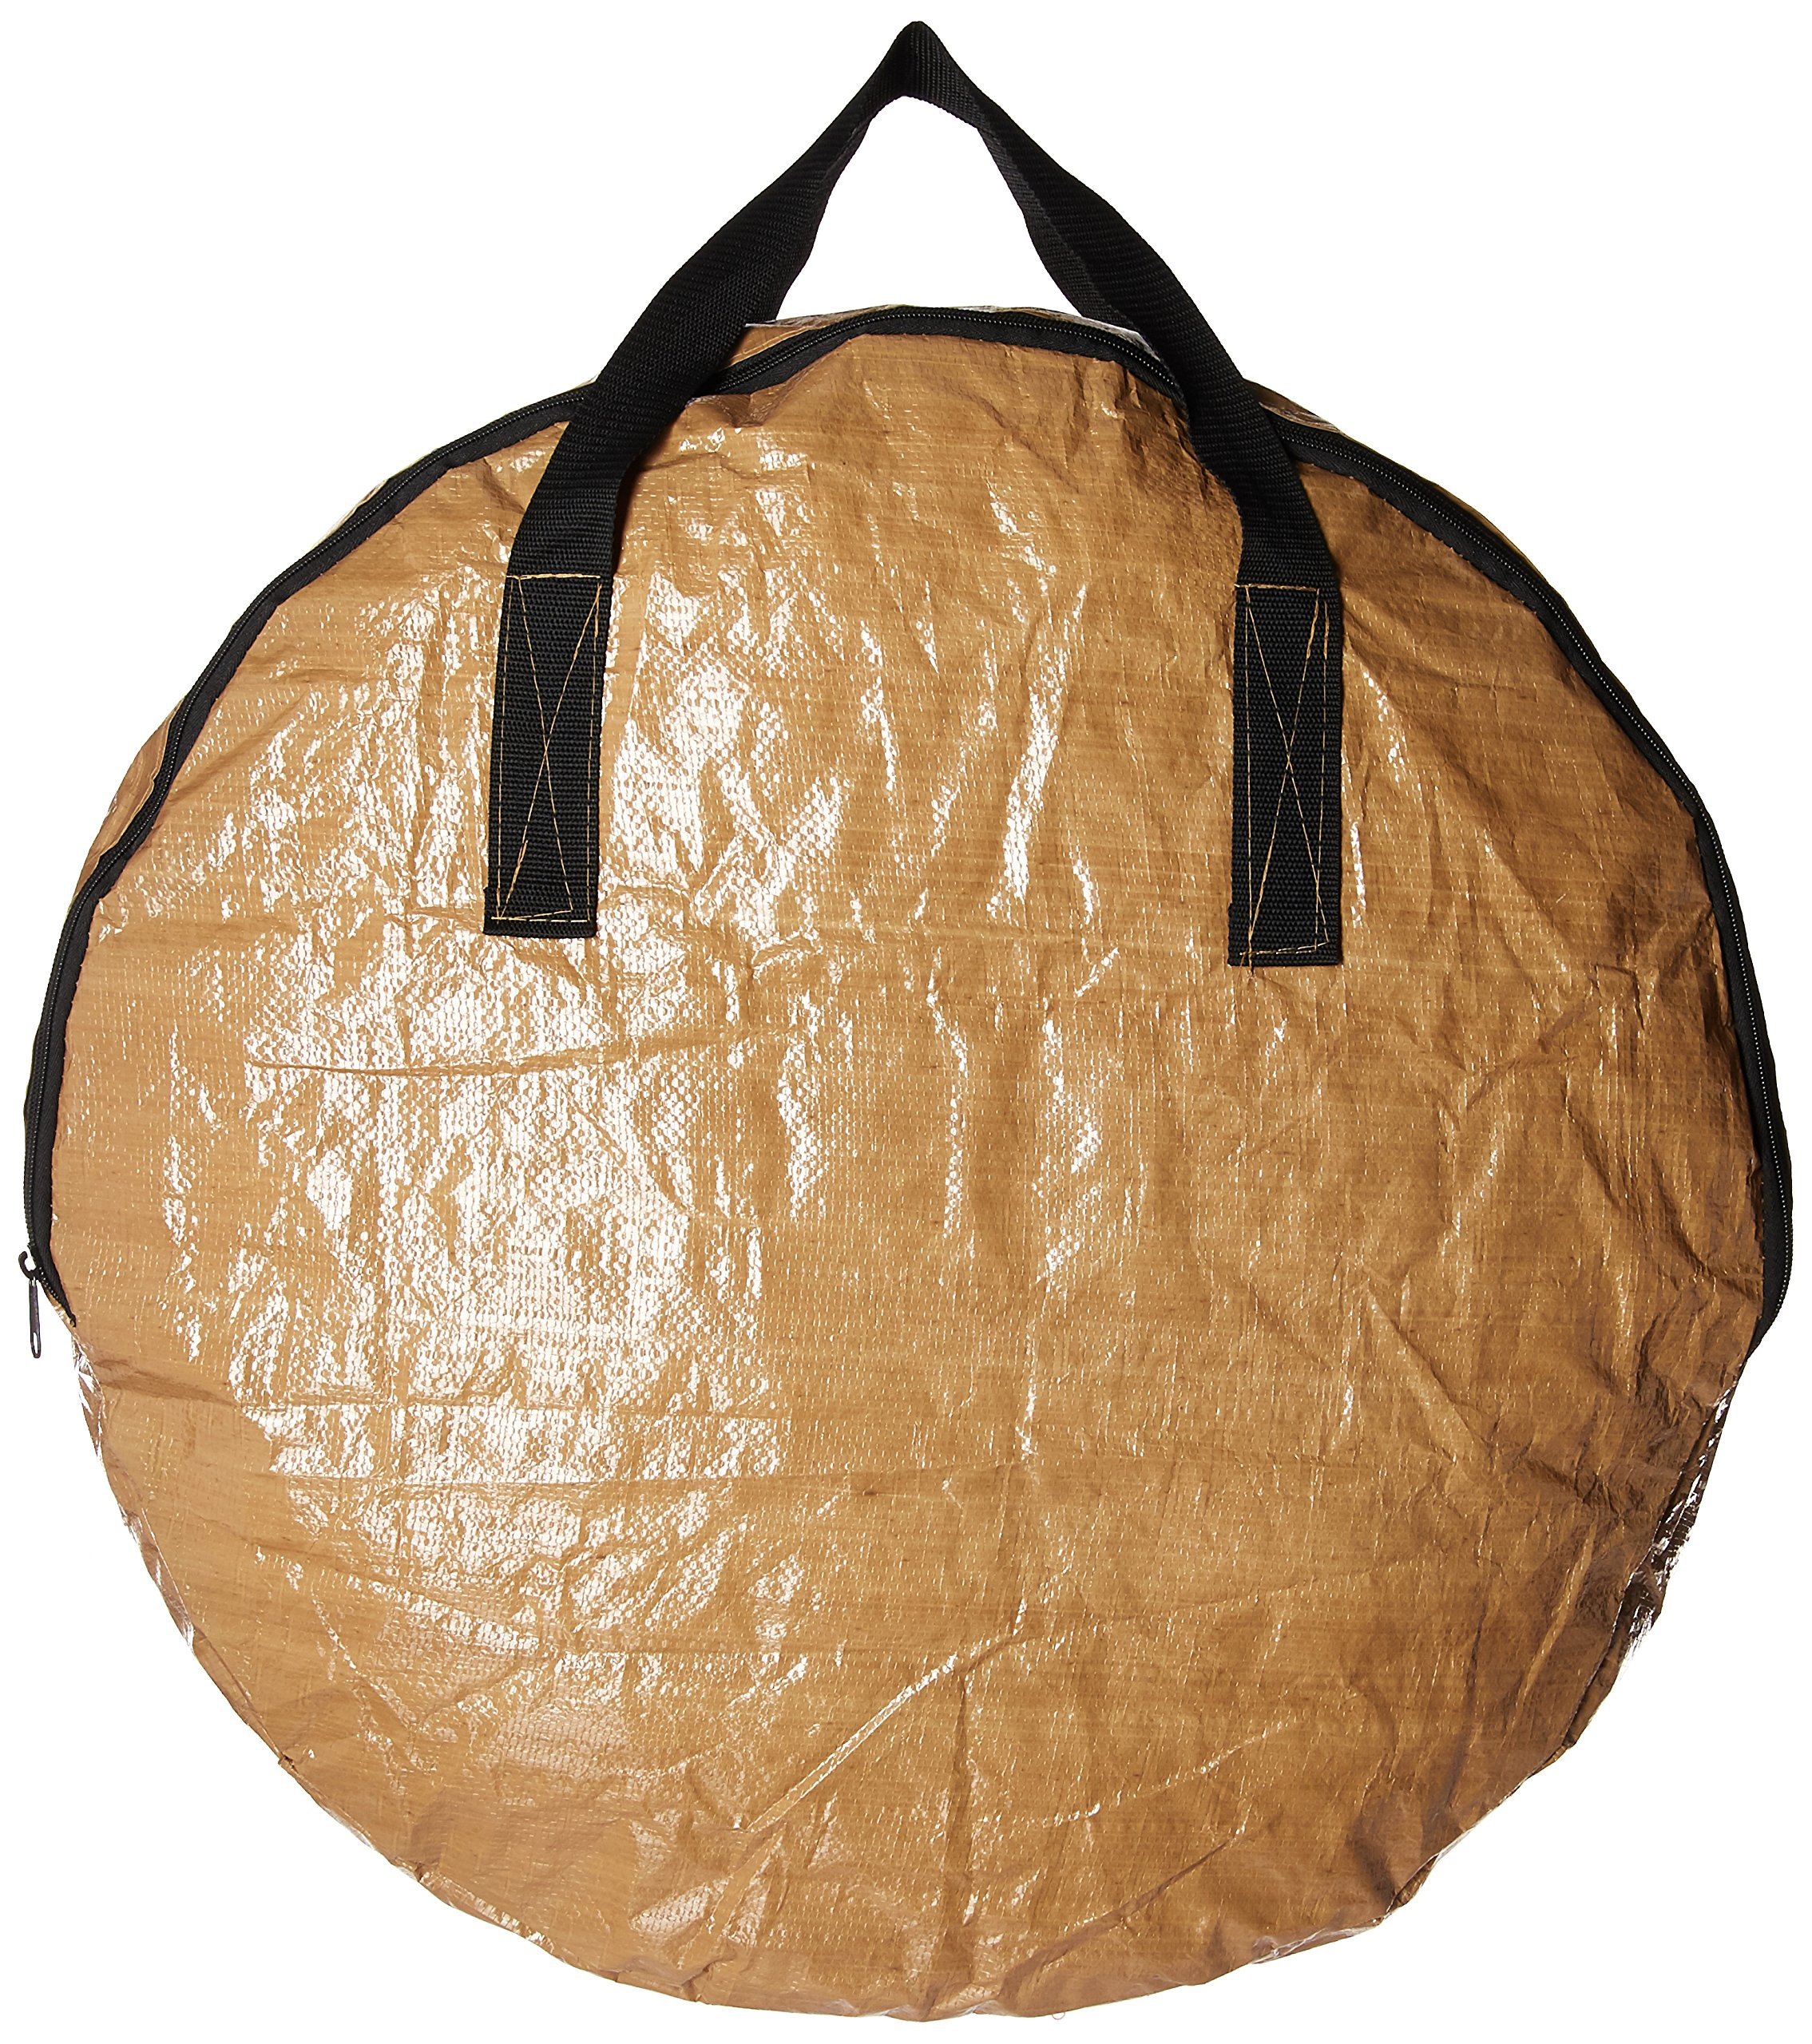 BenefitUSA Heavy Duty Christmas Wreath Storage Bag (Tan, For 24-Inch Wreaths) by BenefitUSA